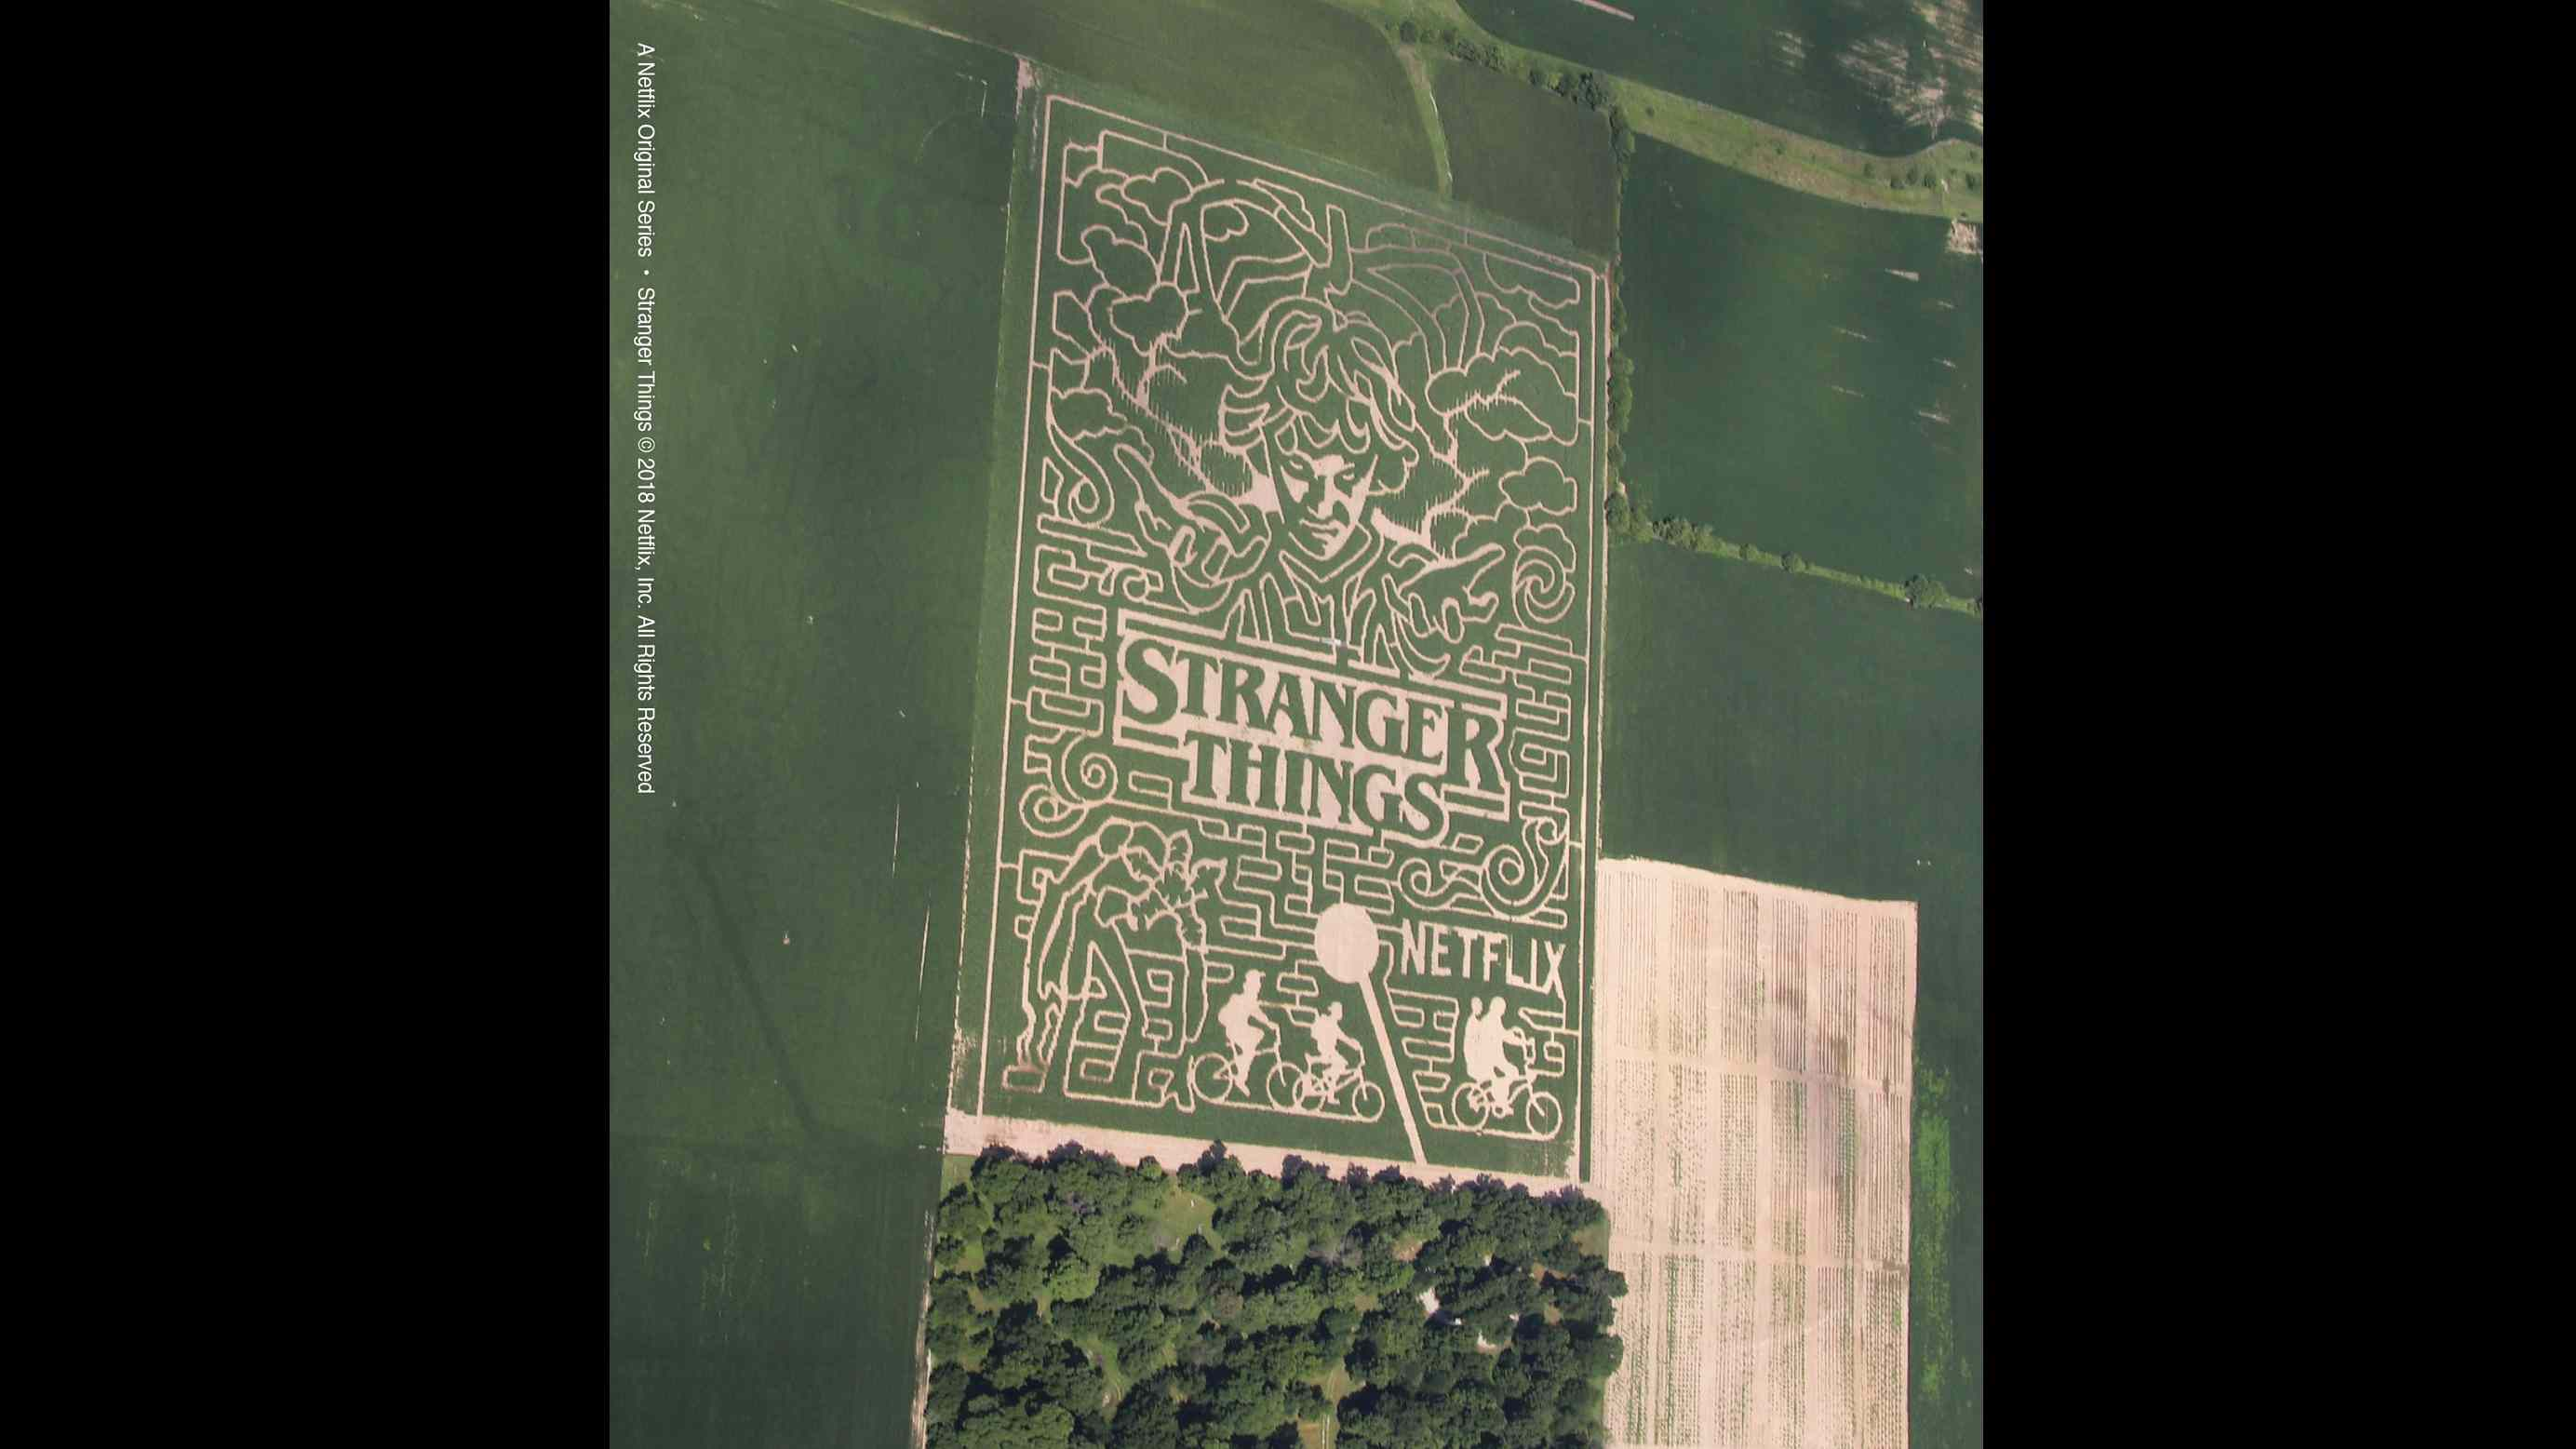 Farm creates a 20-acre Stranger Things corn maze